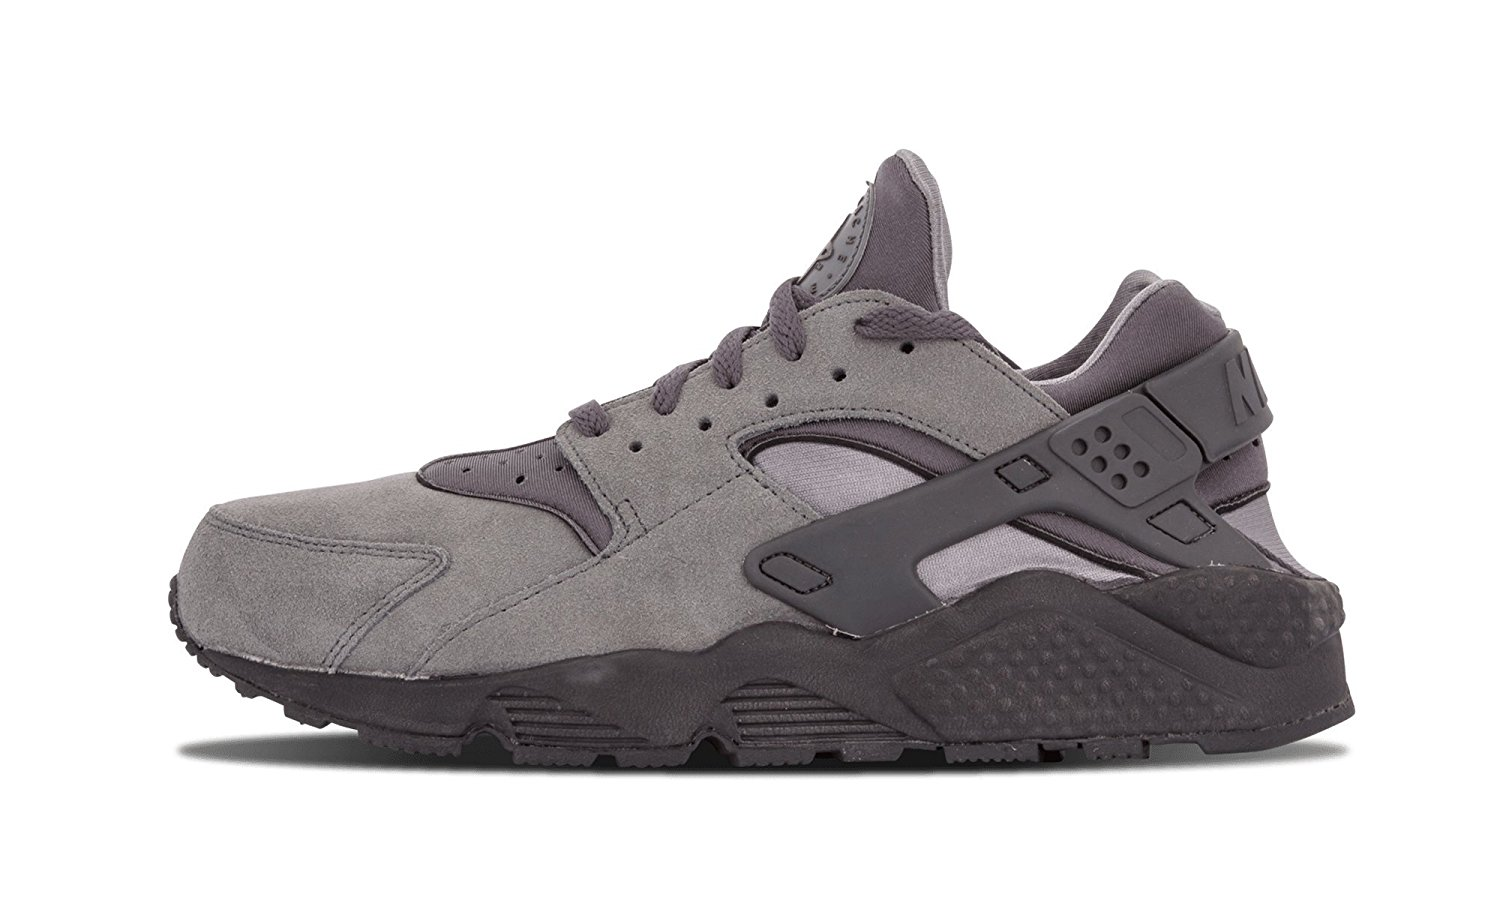 c6b23bc241611 Get Quotations · Nike Air Huarache (Limited Release) Cool Grey/Dark  Grey-Anthracite